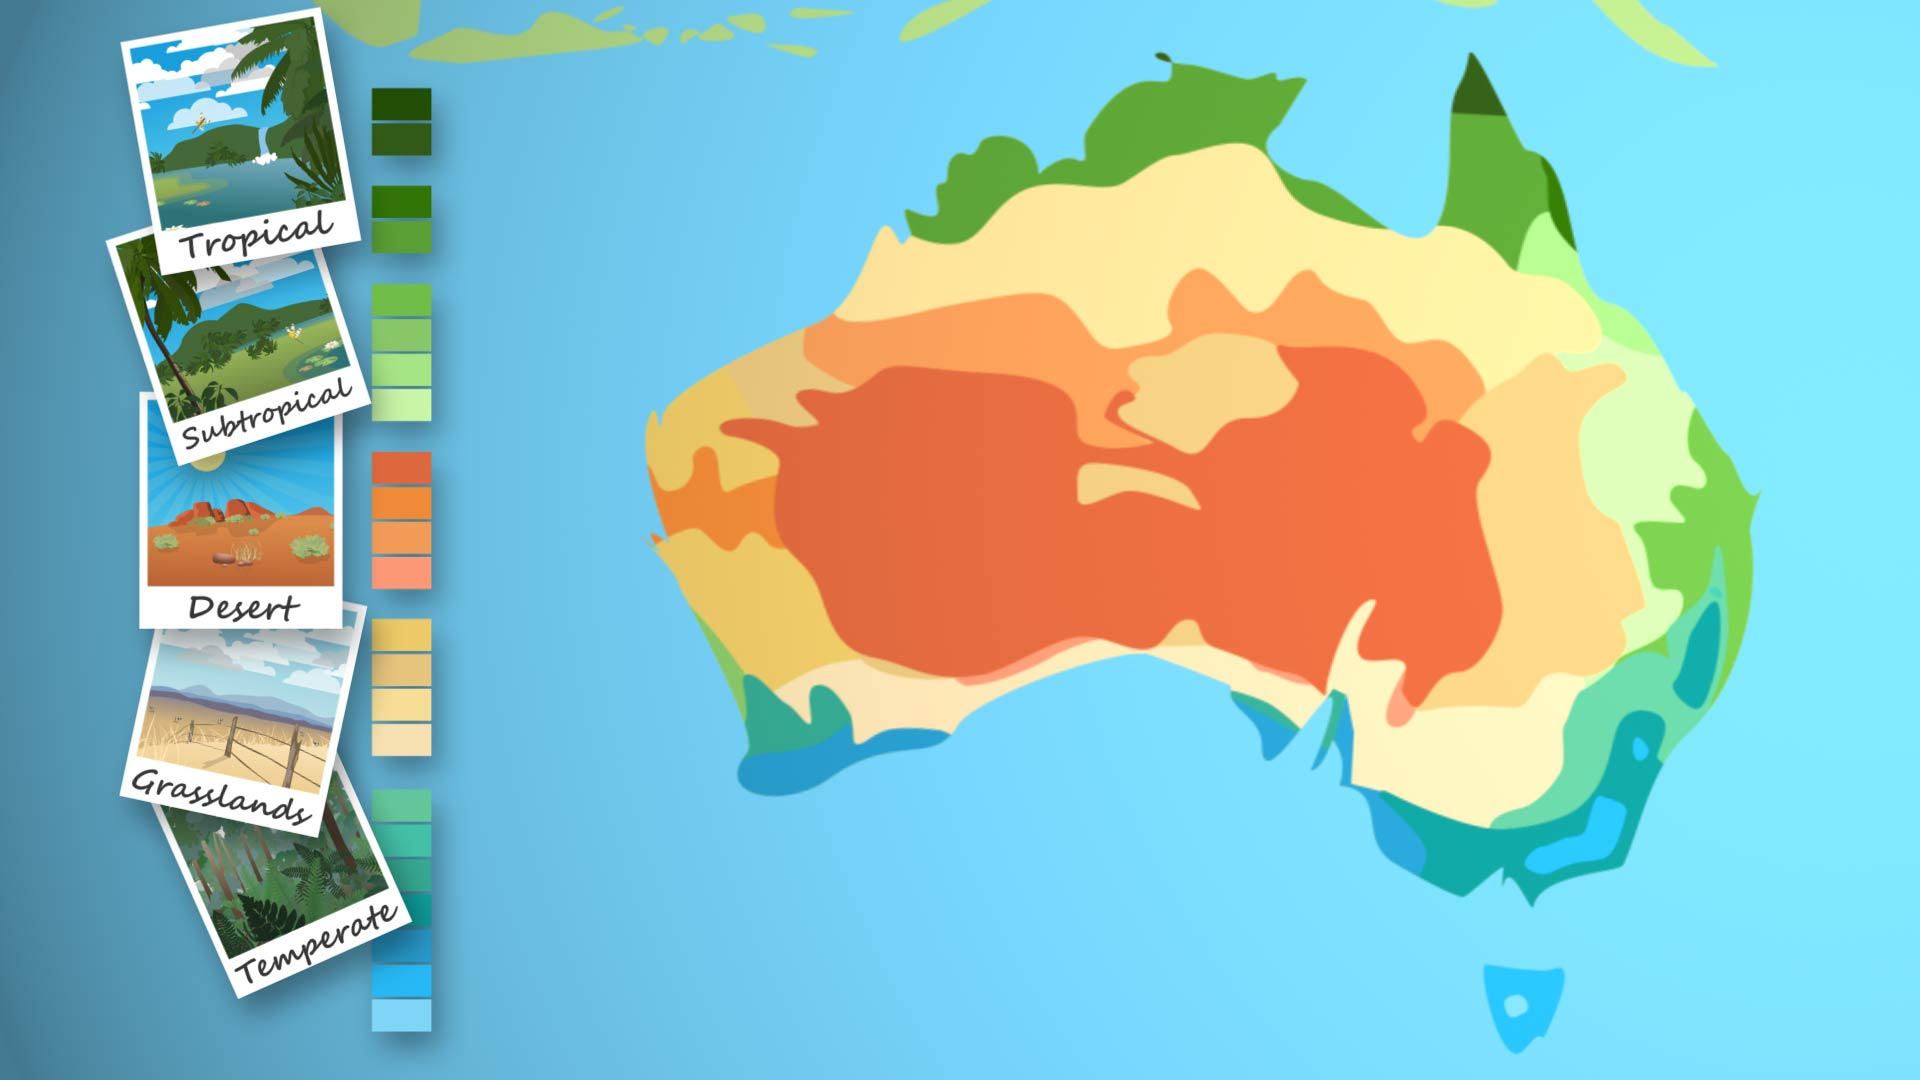 Map of  Australia showing the tropical, subtropical, desert, grasslands and temperate climate zones, illustrating how their proximity to the sea and mountains is a factor in their location.